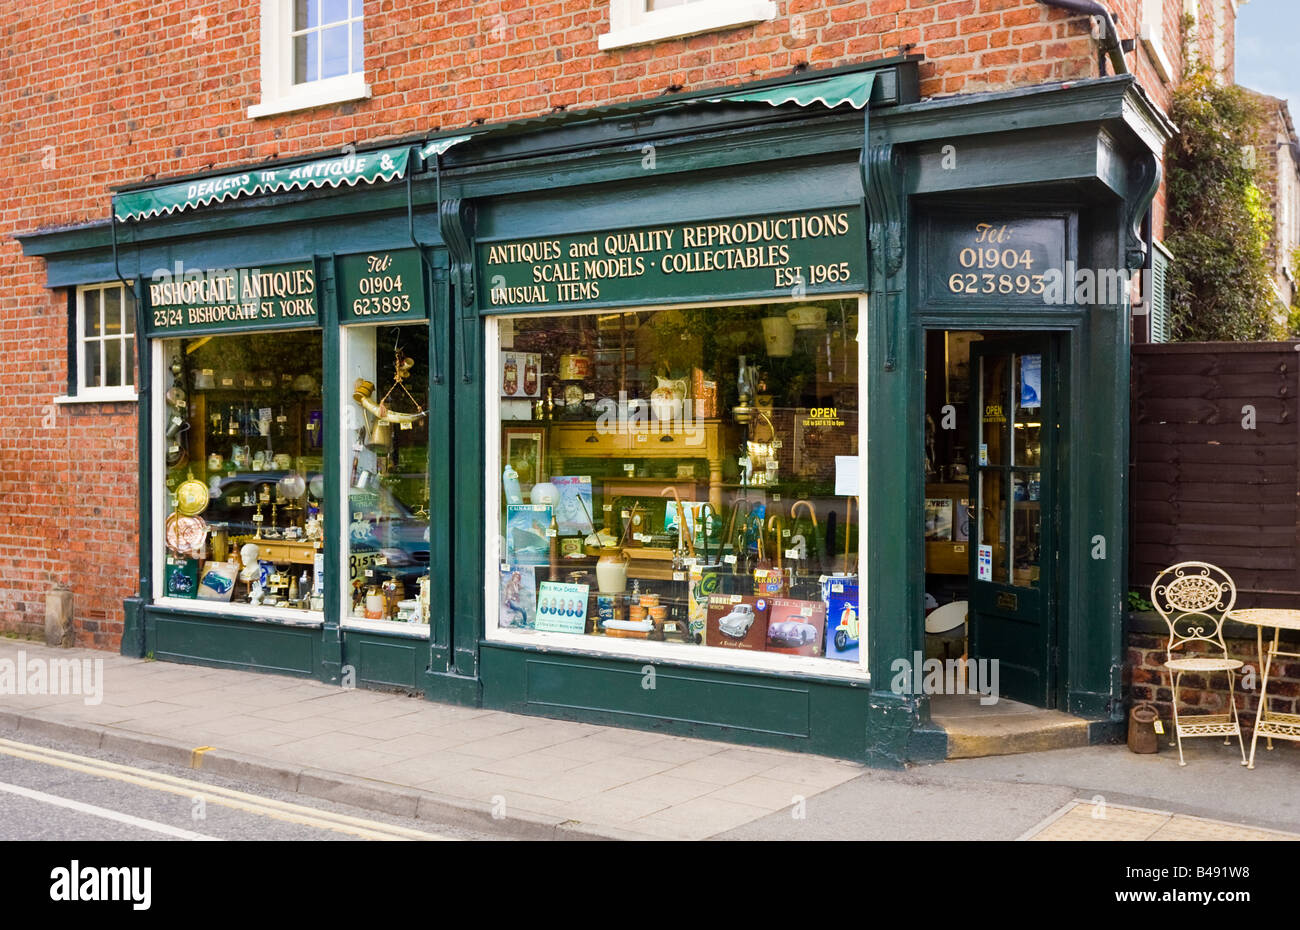 Antiques shop, front exterior, England, UK - Stock Image